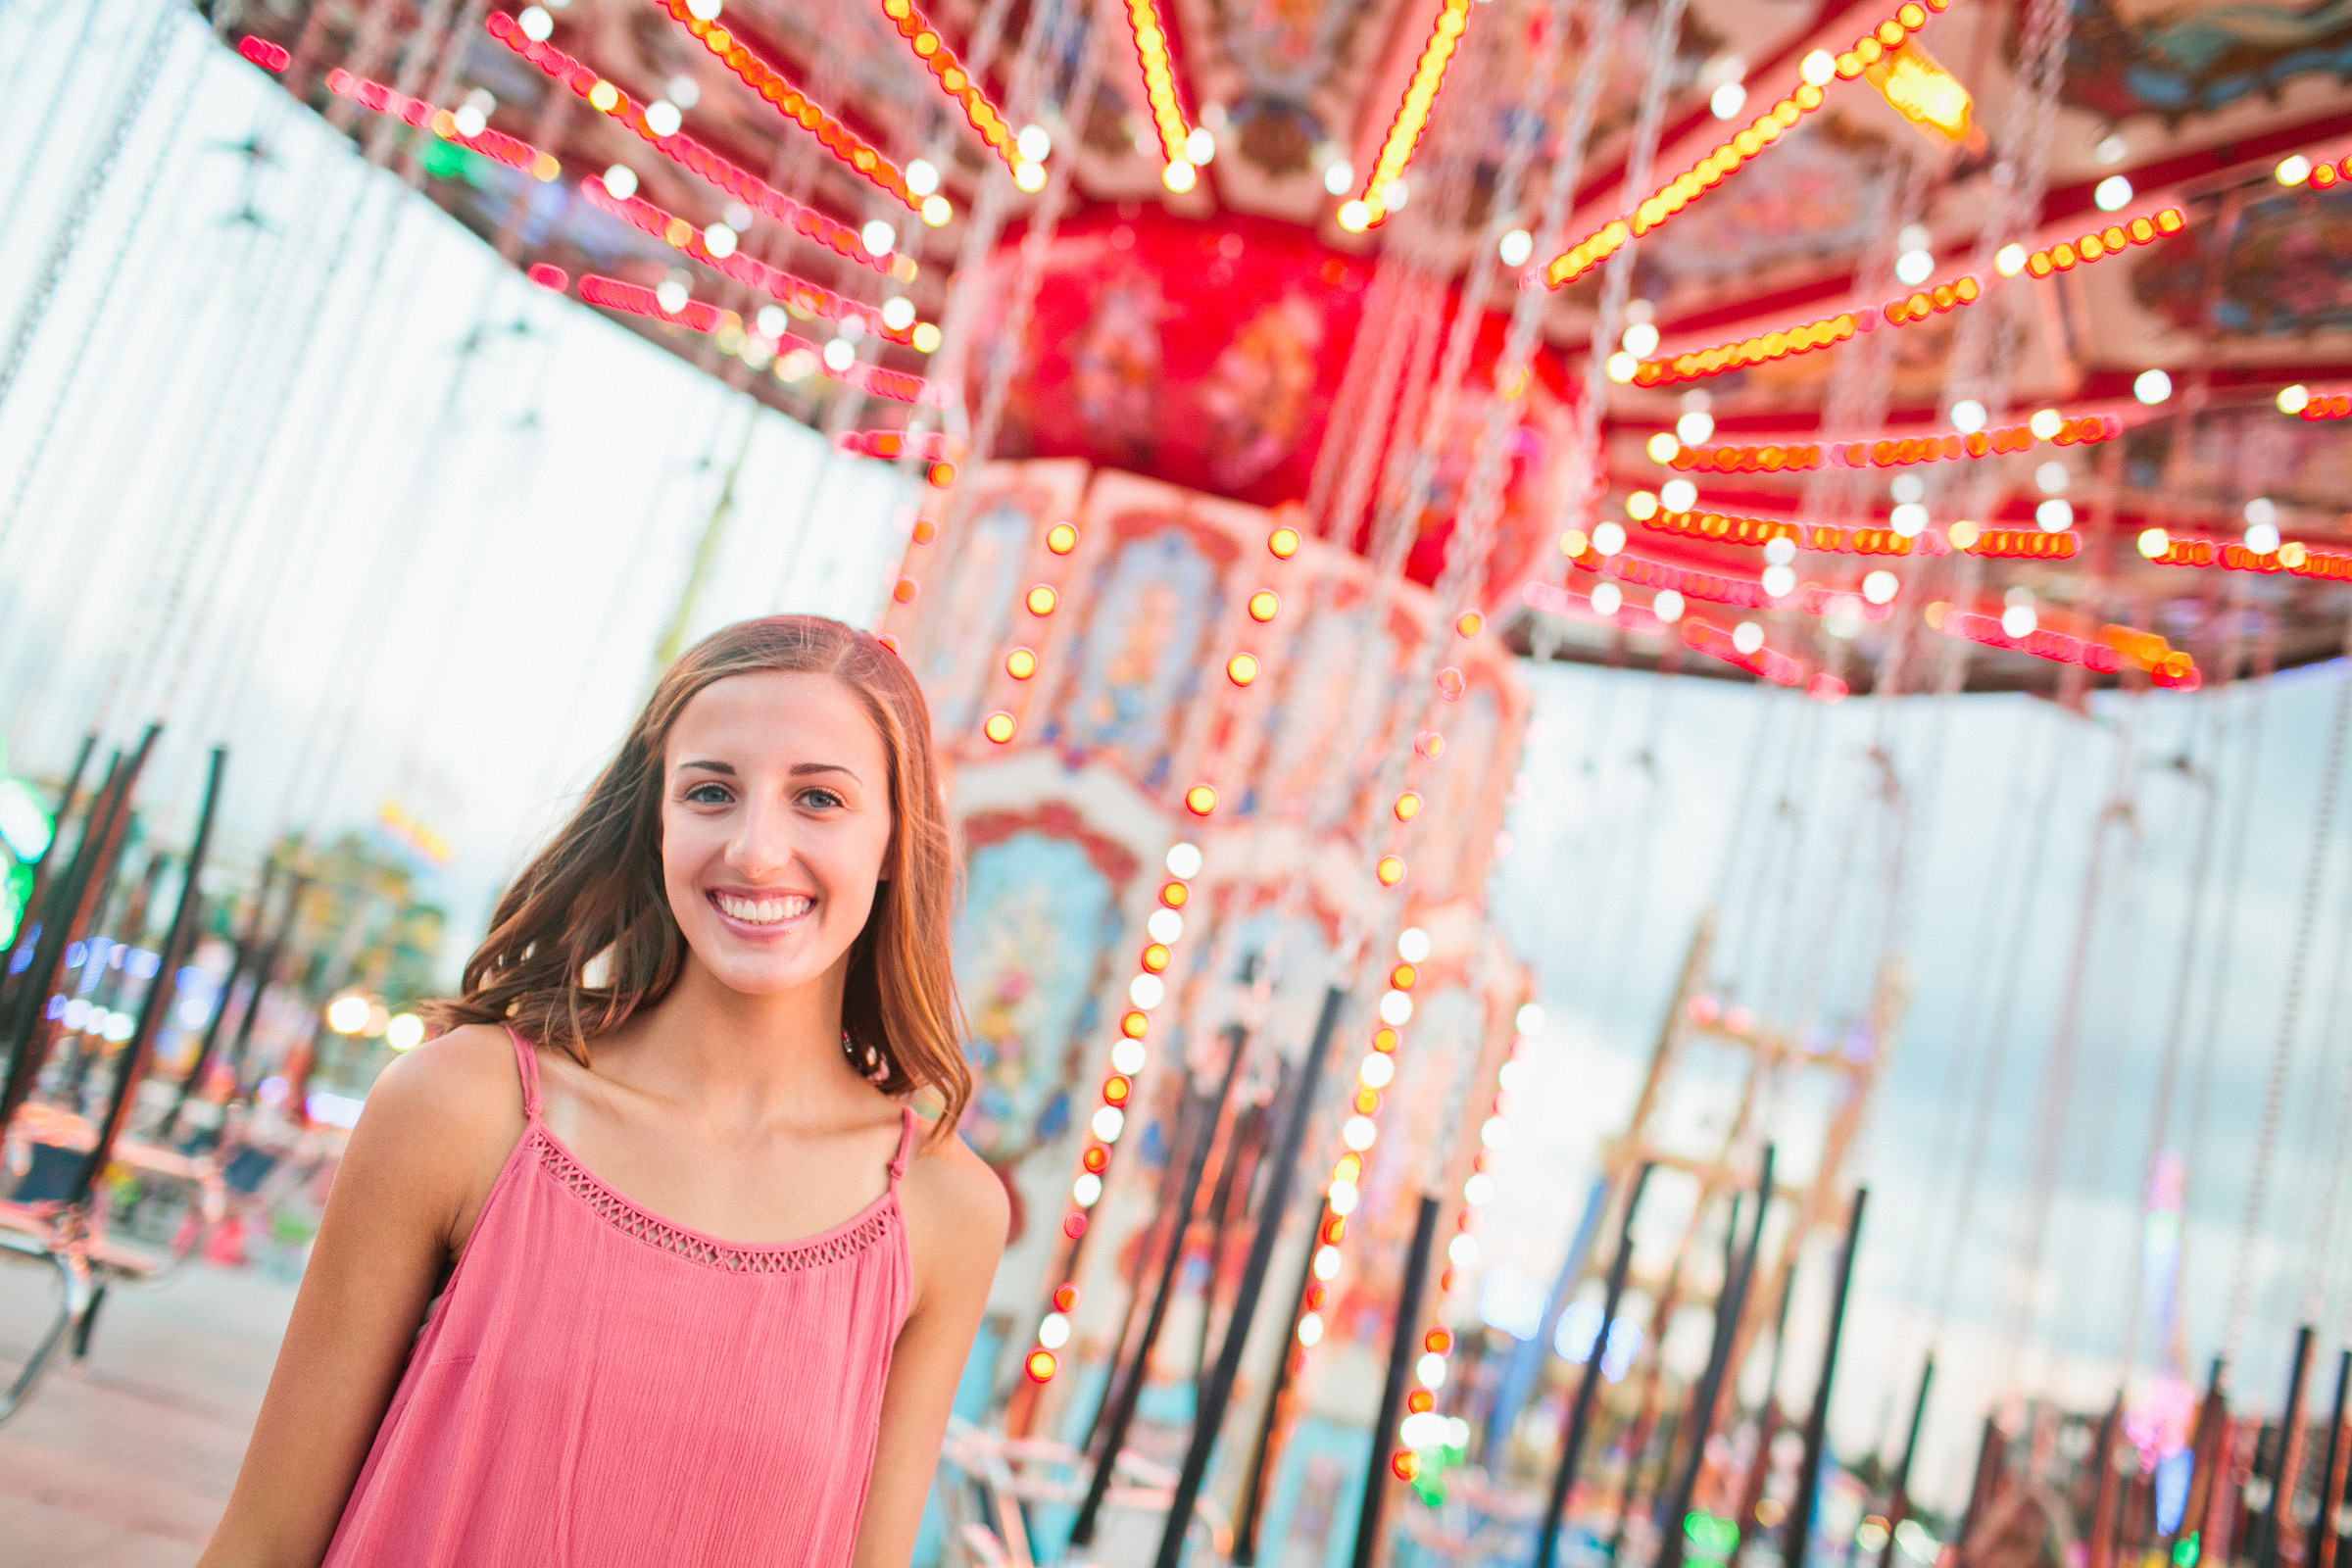 swing ride at iowa state fair senior in pink dress cute girl Midway